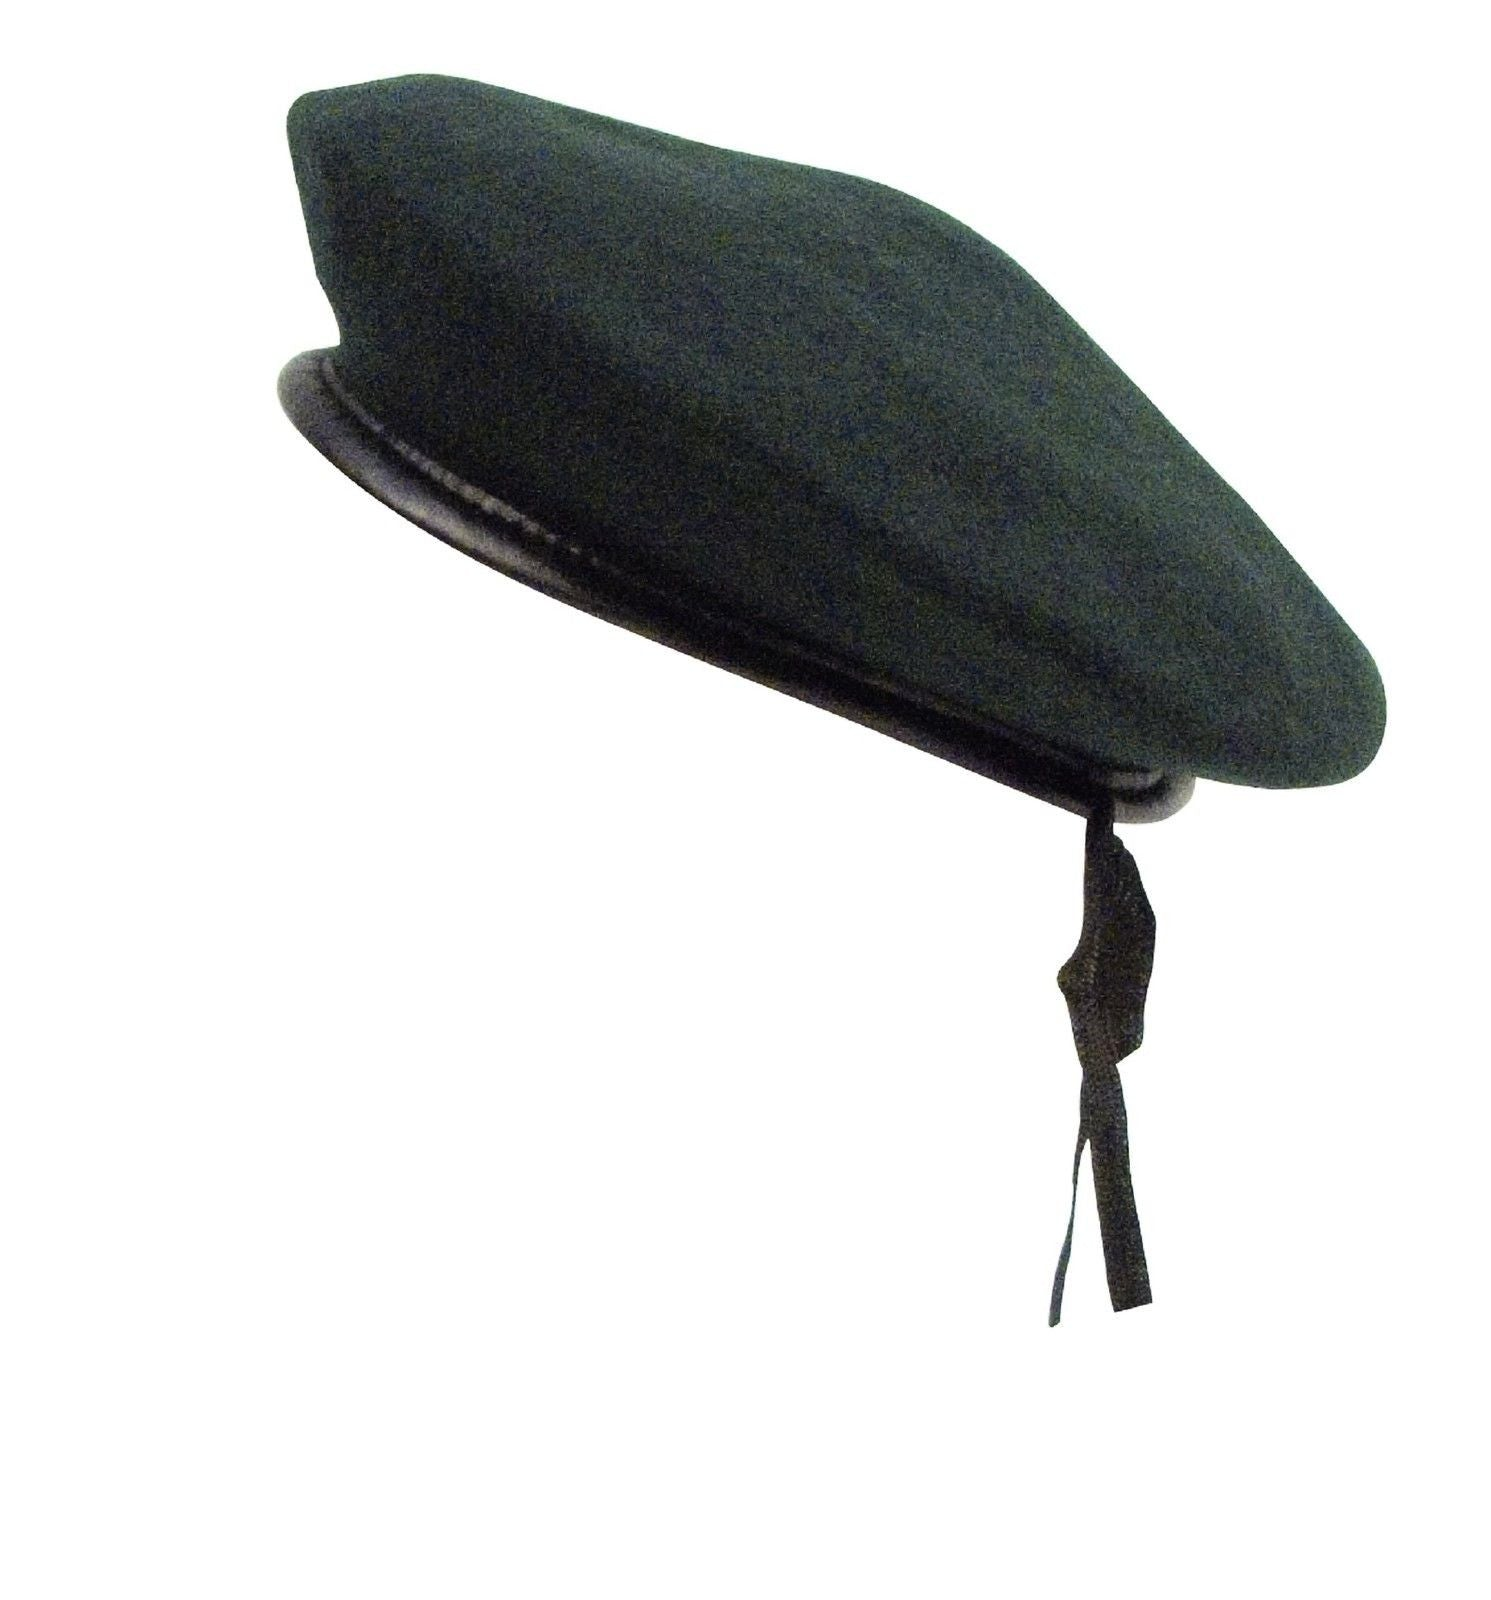 GI Style Beret Black Red OD Green Woodland Camo Military